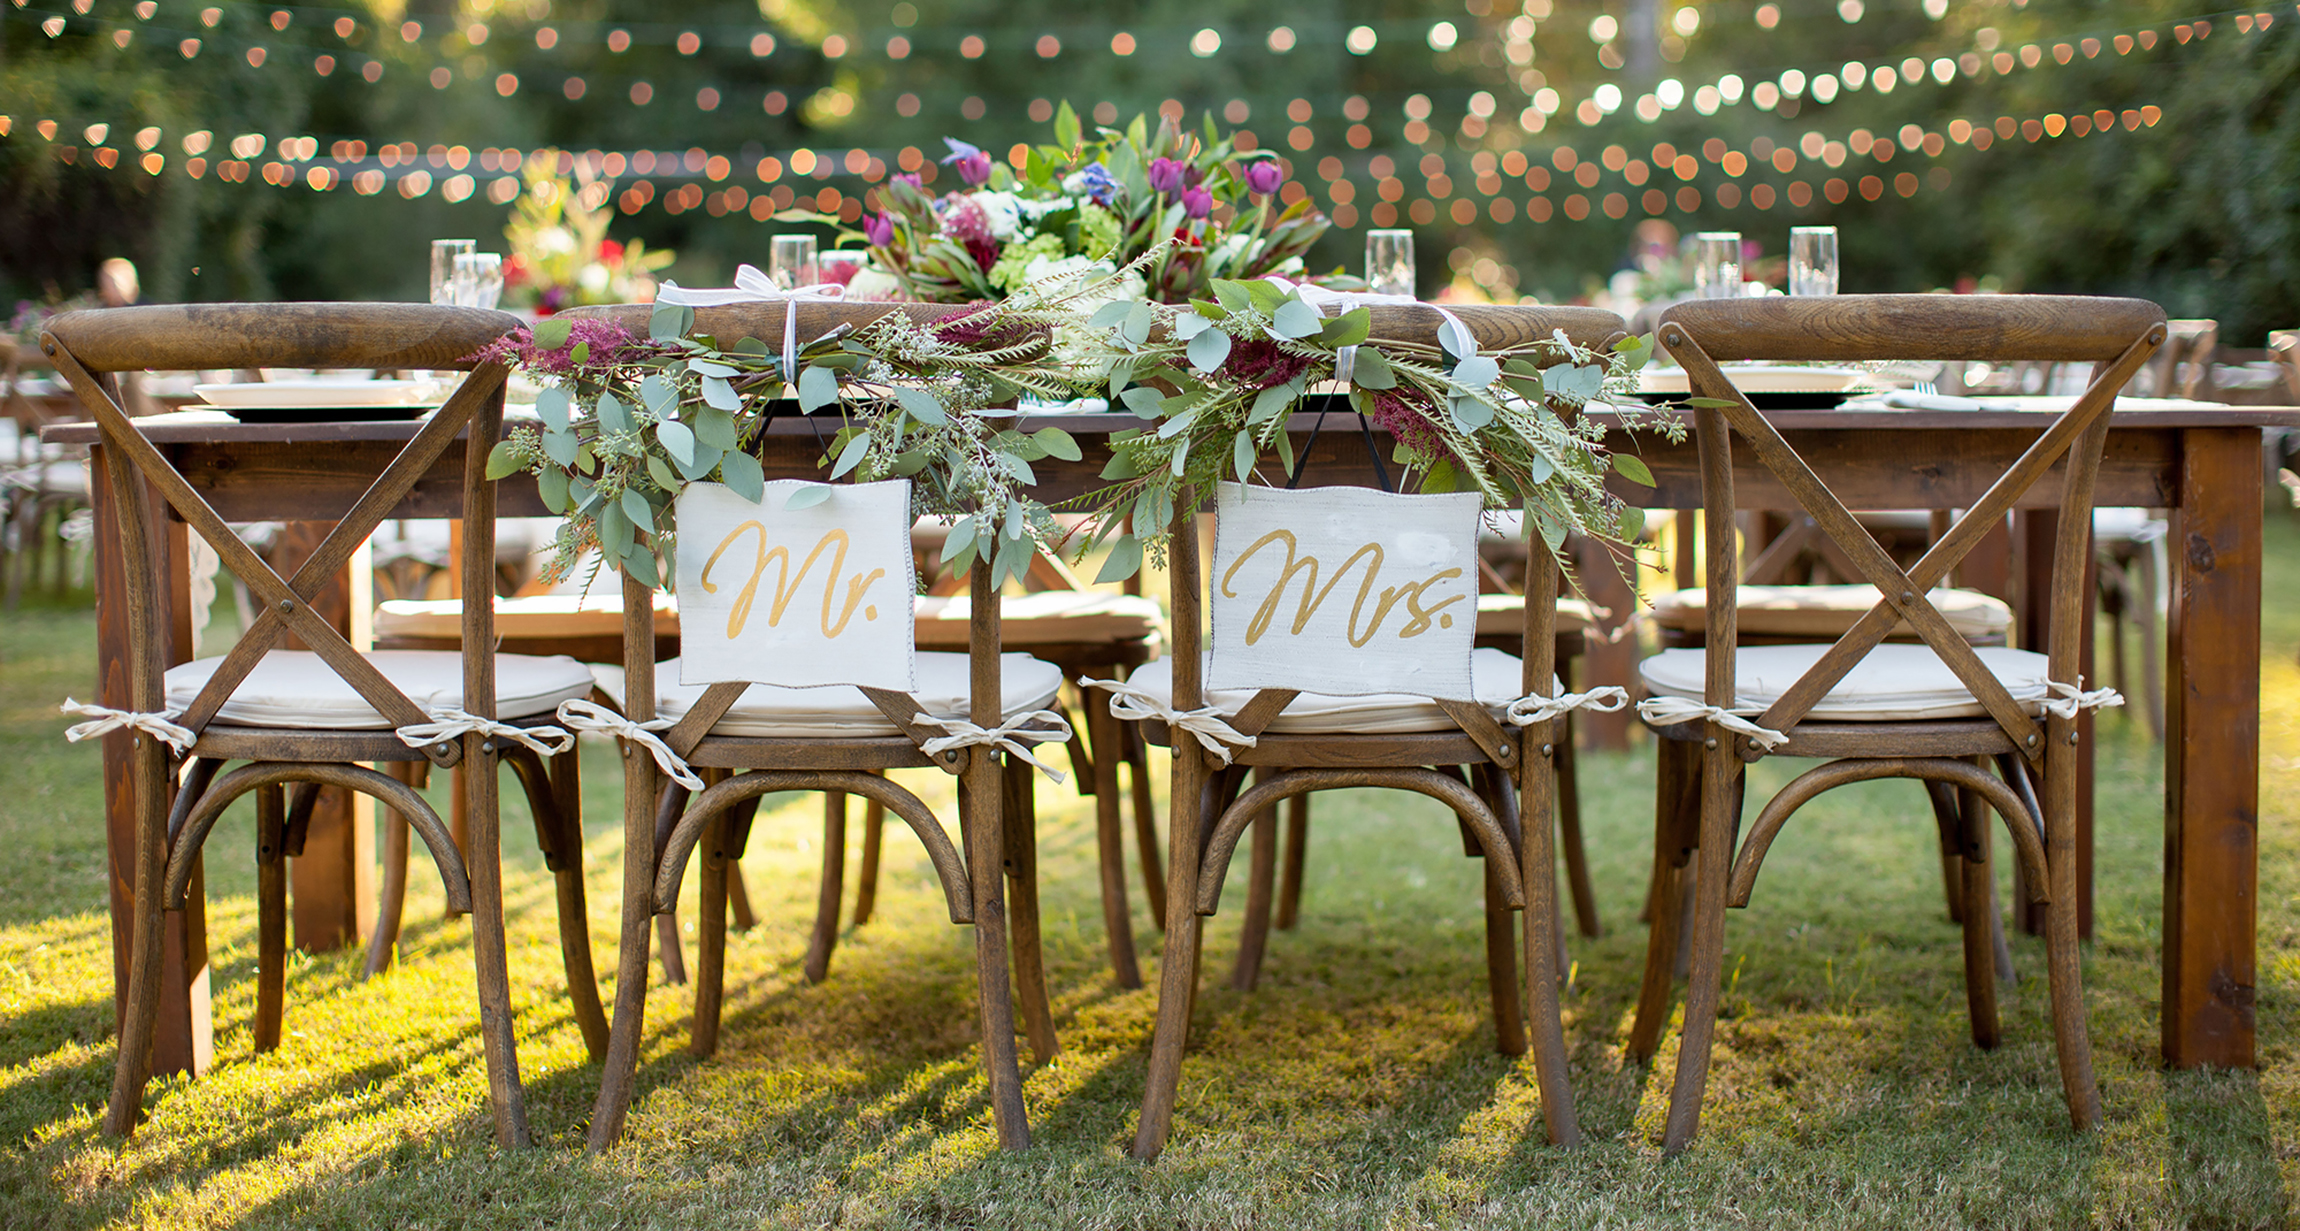 Rental Chairs And Tables Farm Table Rentals Rustic Wedding Chairs Rental In South Florida